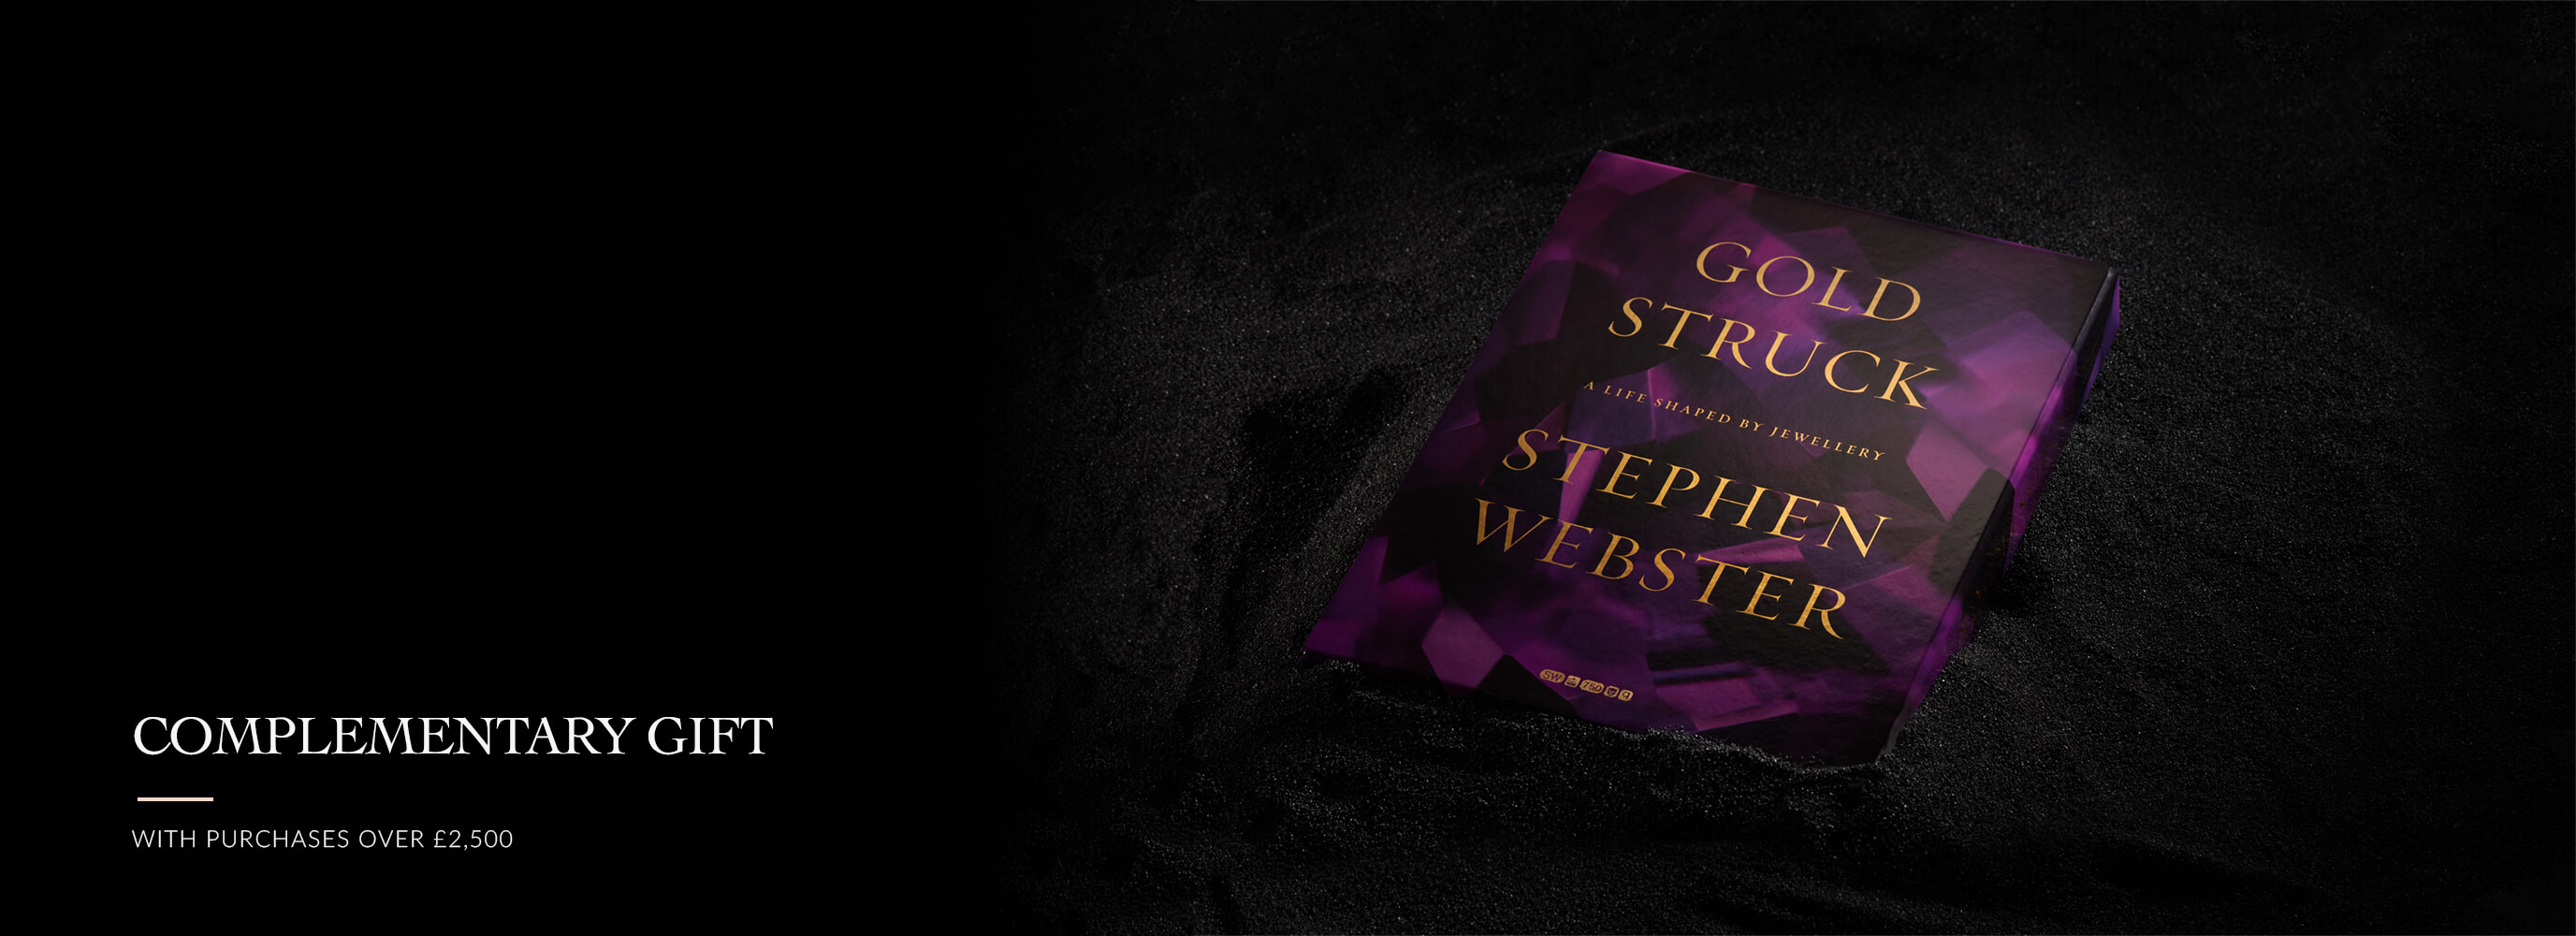 Receive Stephen Webster's Goldstruck: A Life Shaped by Jewellery book with purchases over £2,500.